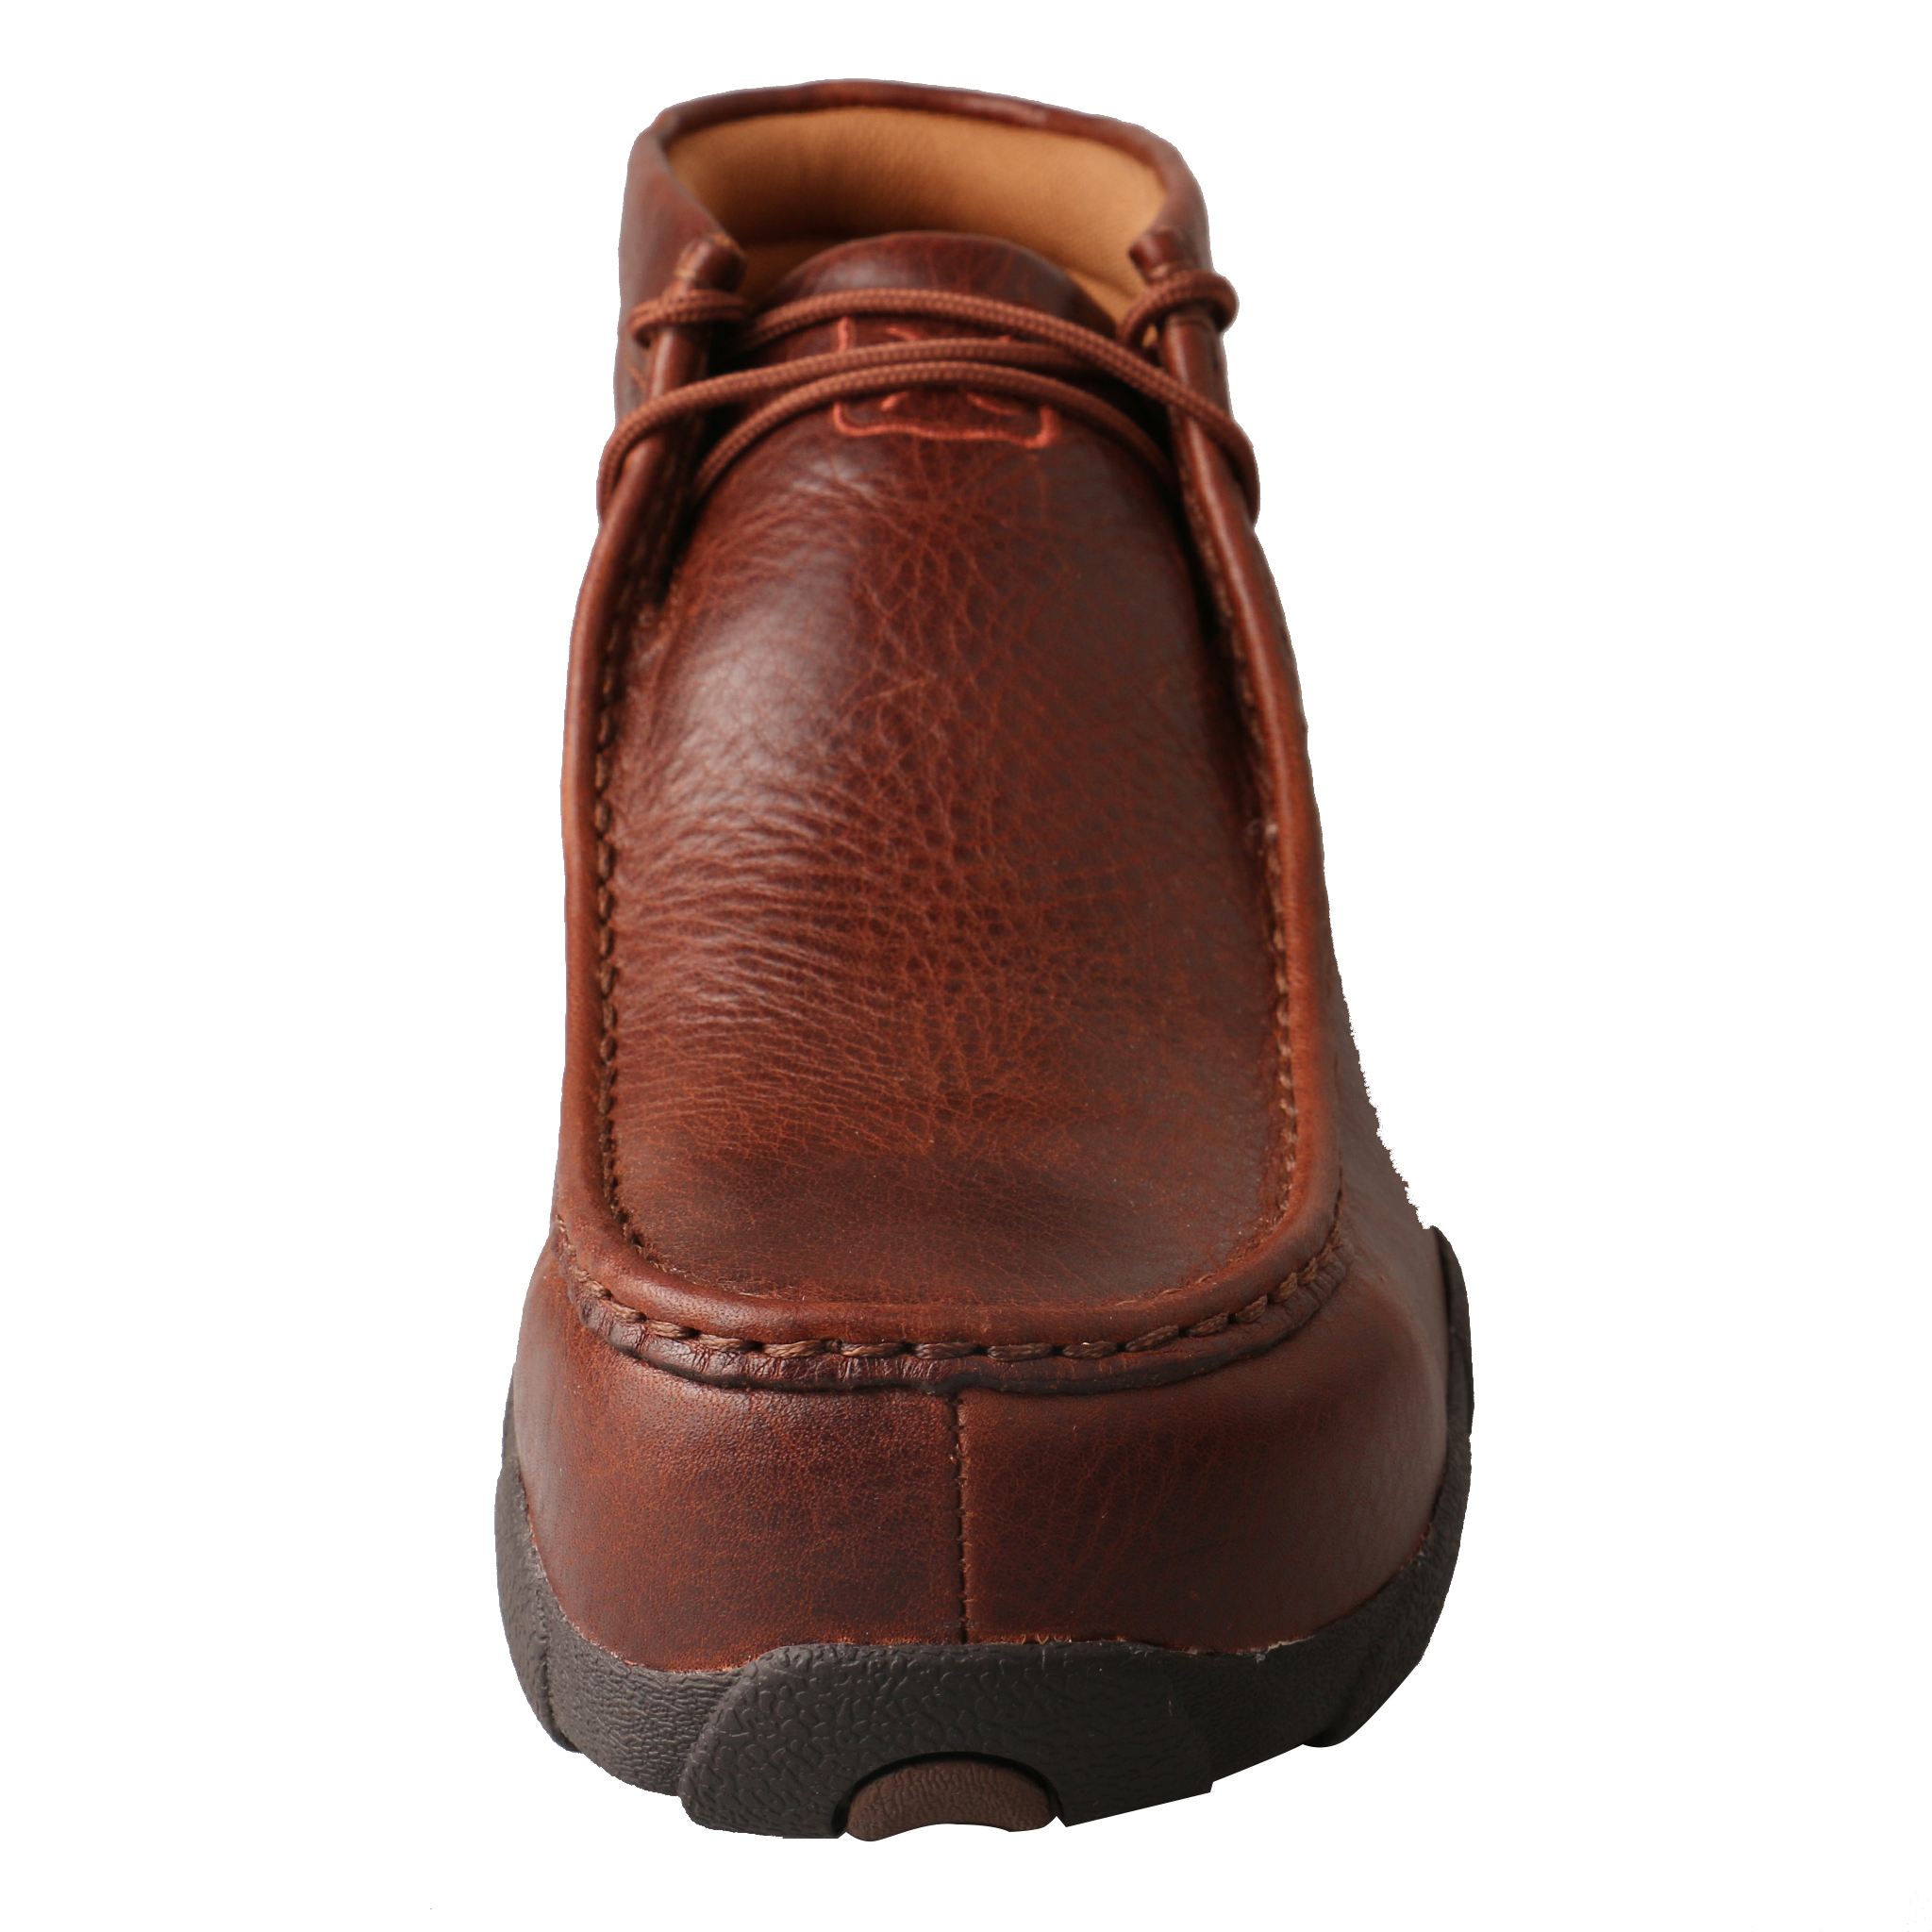 Men's Driving Moccasins – Cognac Glazed Pebble-Twisted X